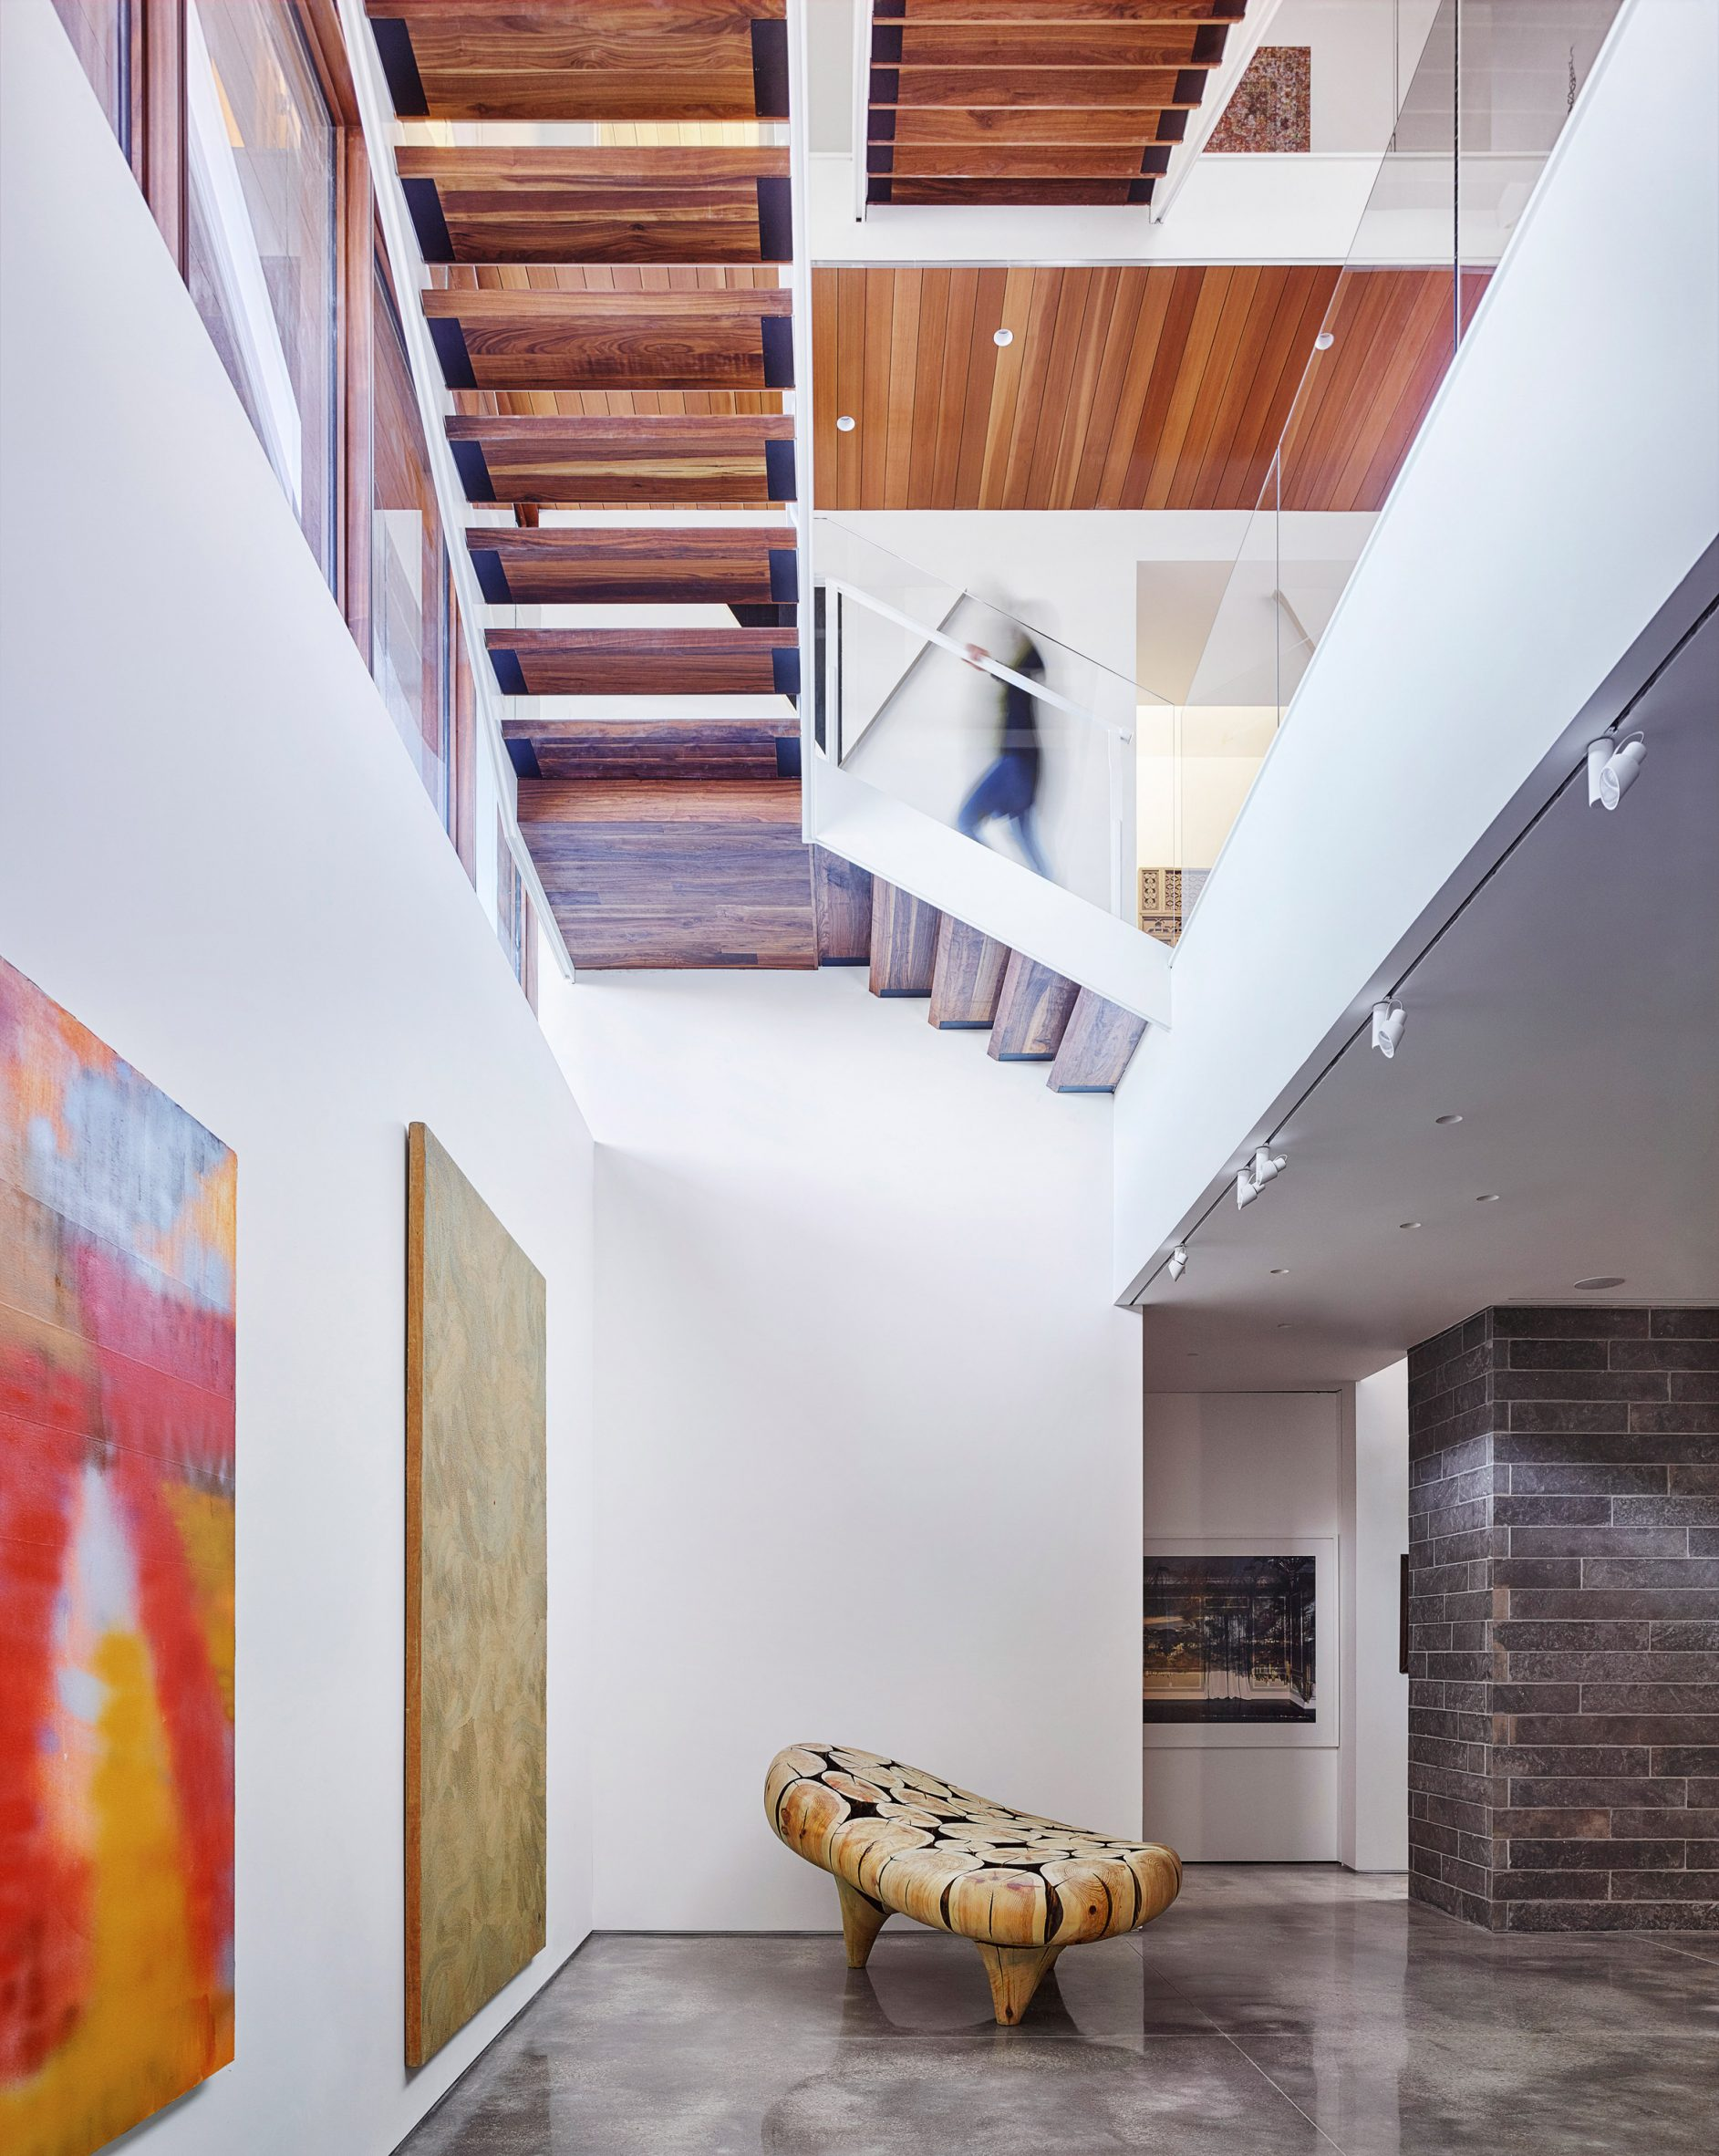 Art-filled interior space in US home